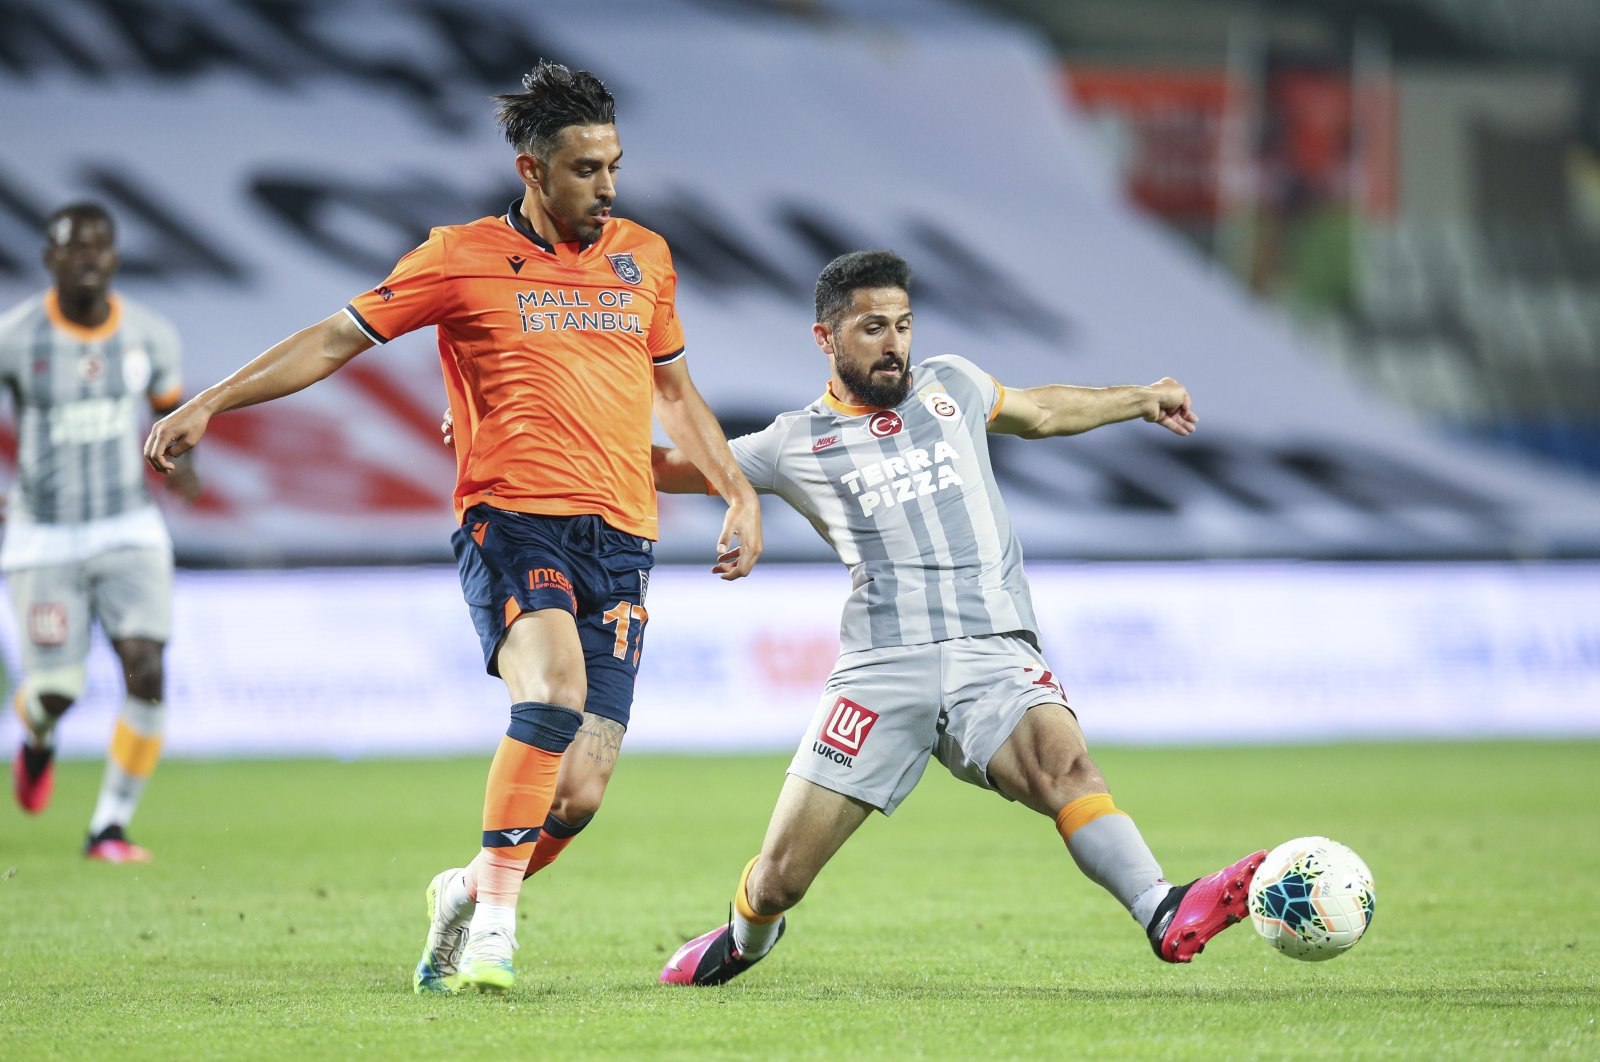 Başakşehir's Irfan Can Kahveci (L) and Galatasaray's Emre Akbaba compete for the ball during a Süper Lig match in Istanbul, Turkey, June 28, 2020. (AA Photo)